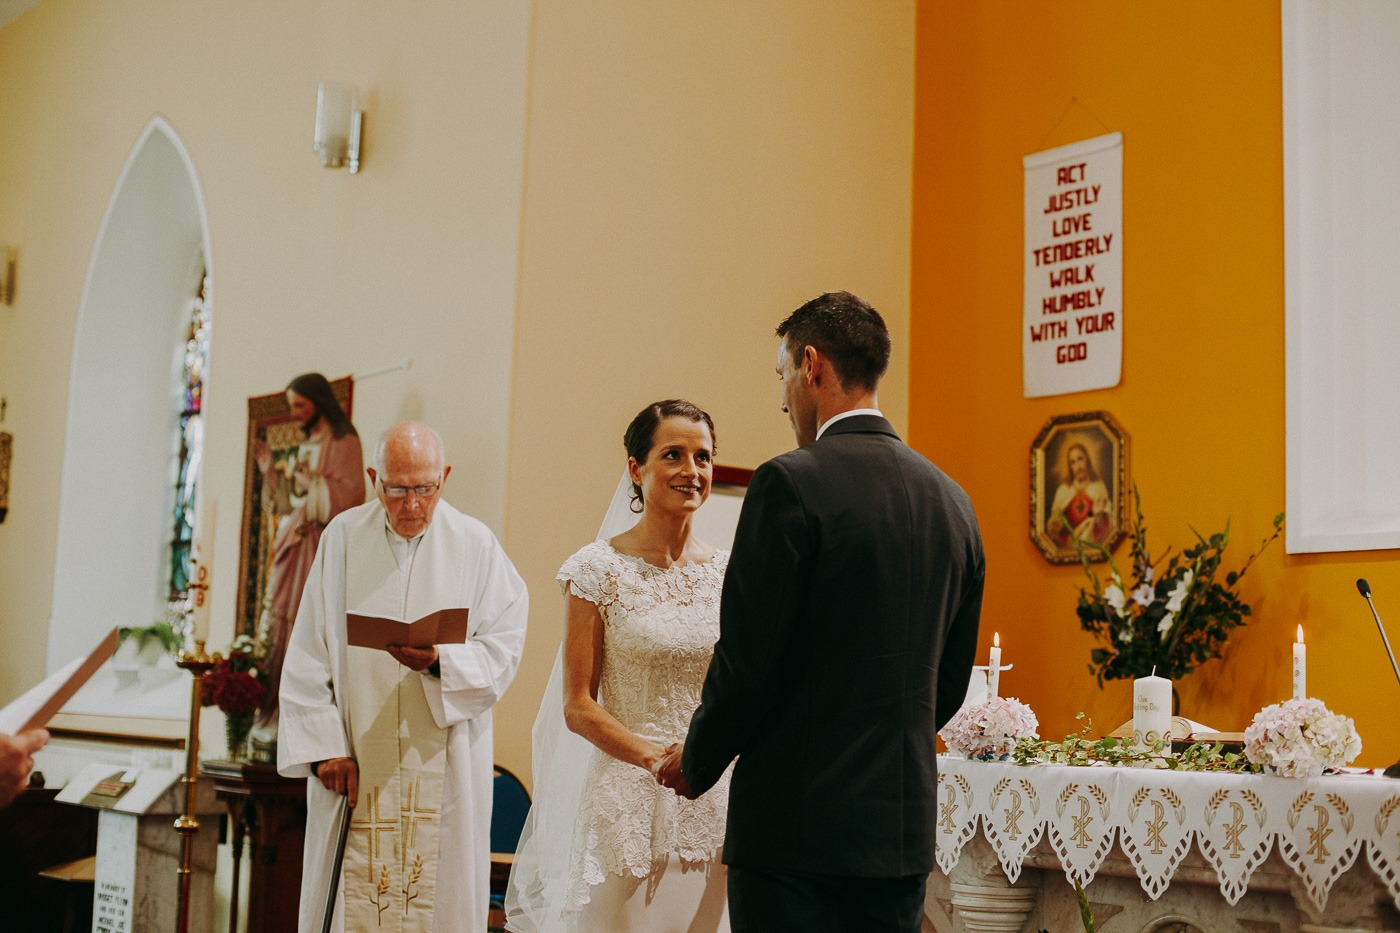 A man and a woman standing in front of a wedding cake